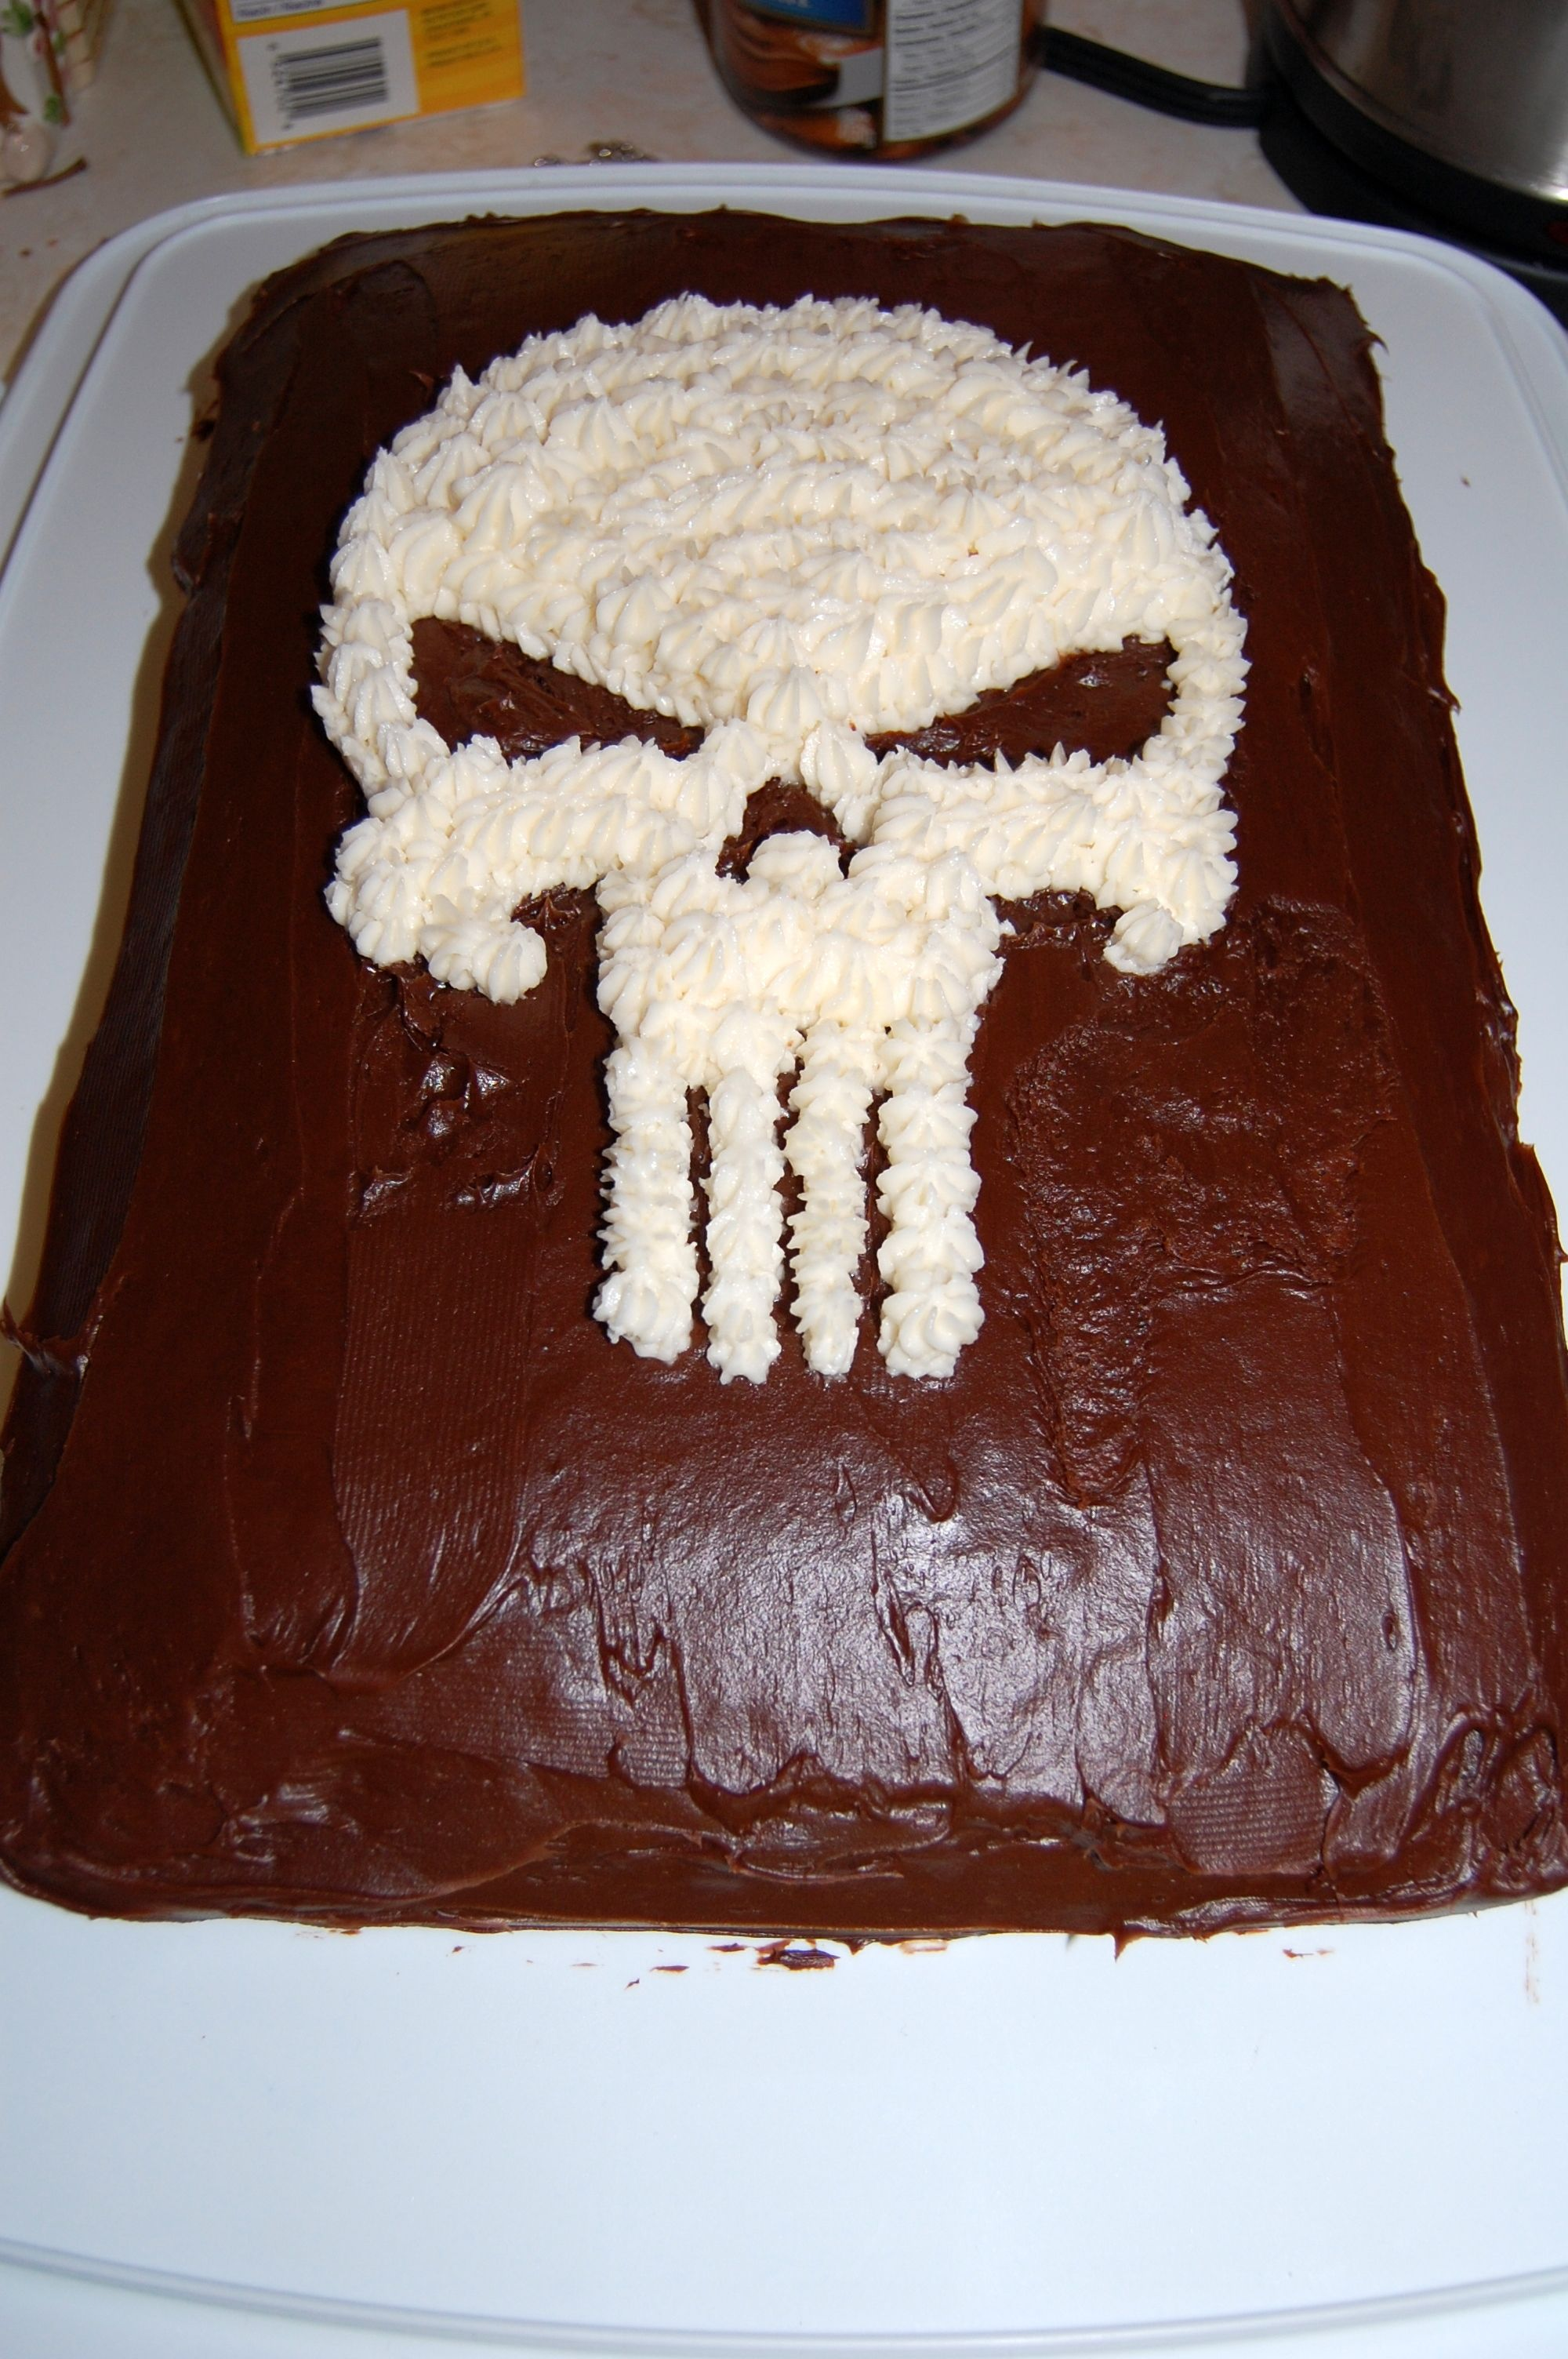 Birthday Cake Picture For My Brother : punisher birthday cake for my brother Things I ve Made ...